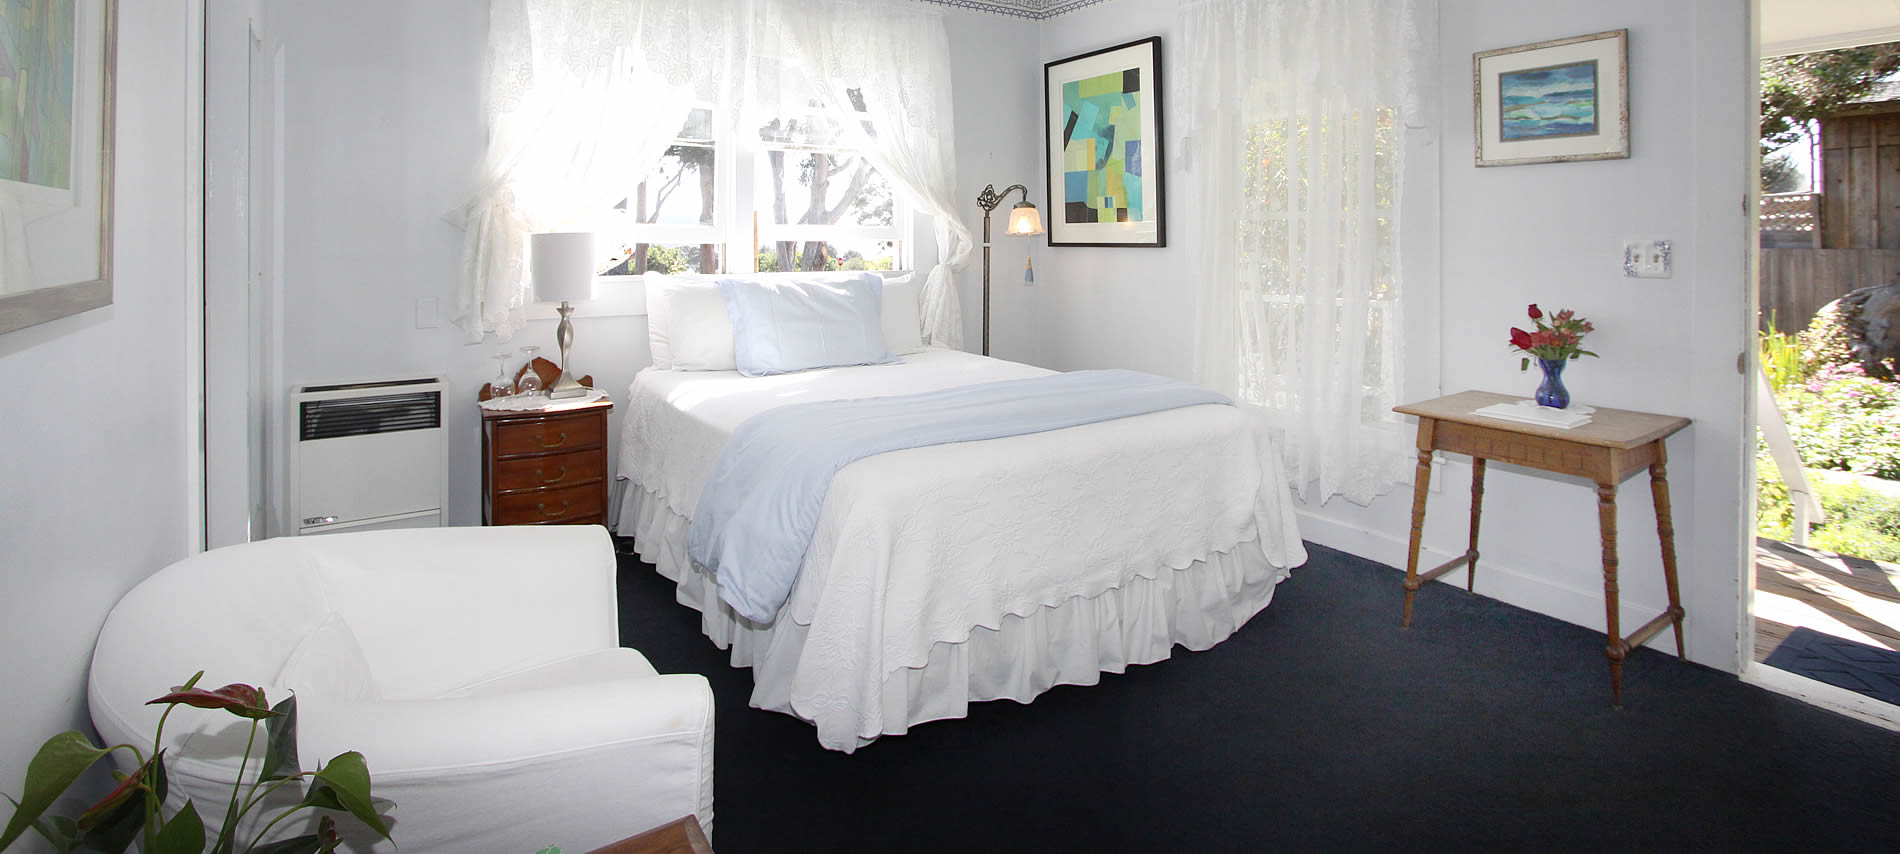 mendocino bed and breakfast guest room with white bed, blue carpet, sitting chair and table with flowers